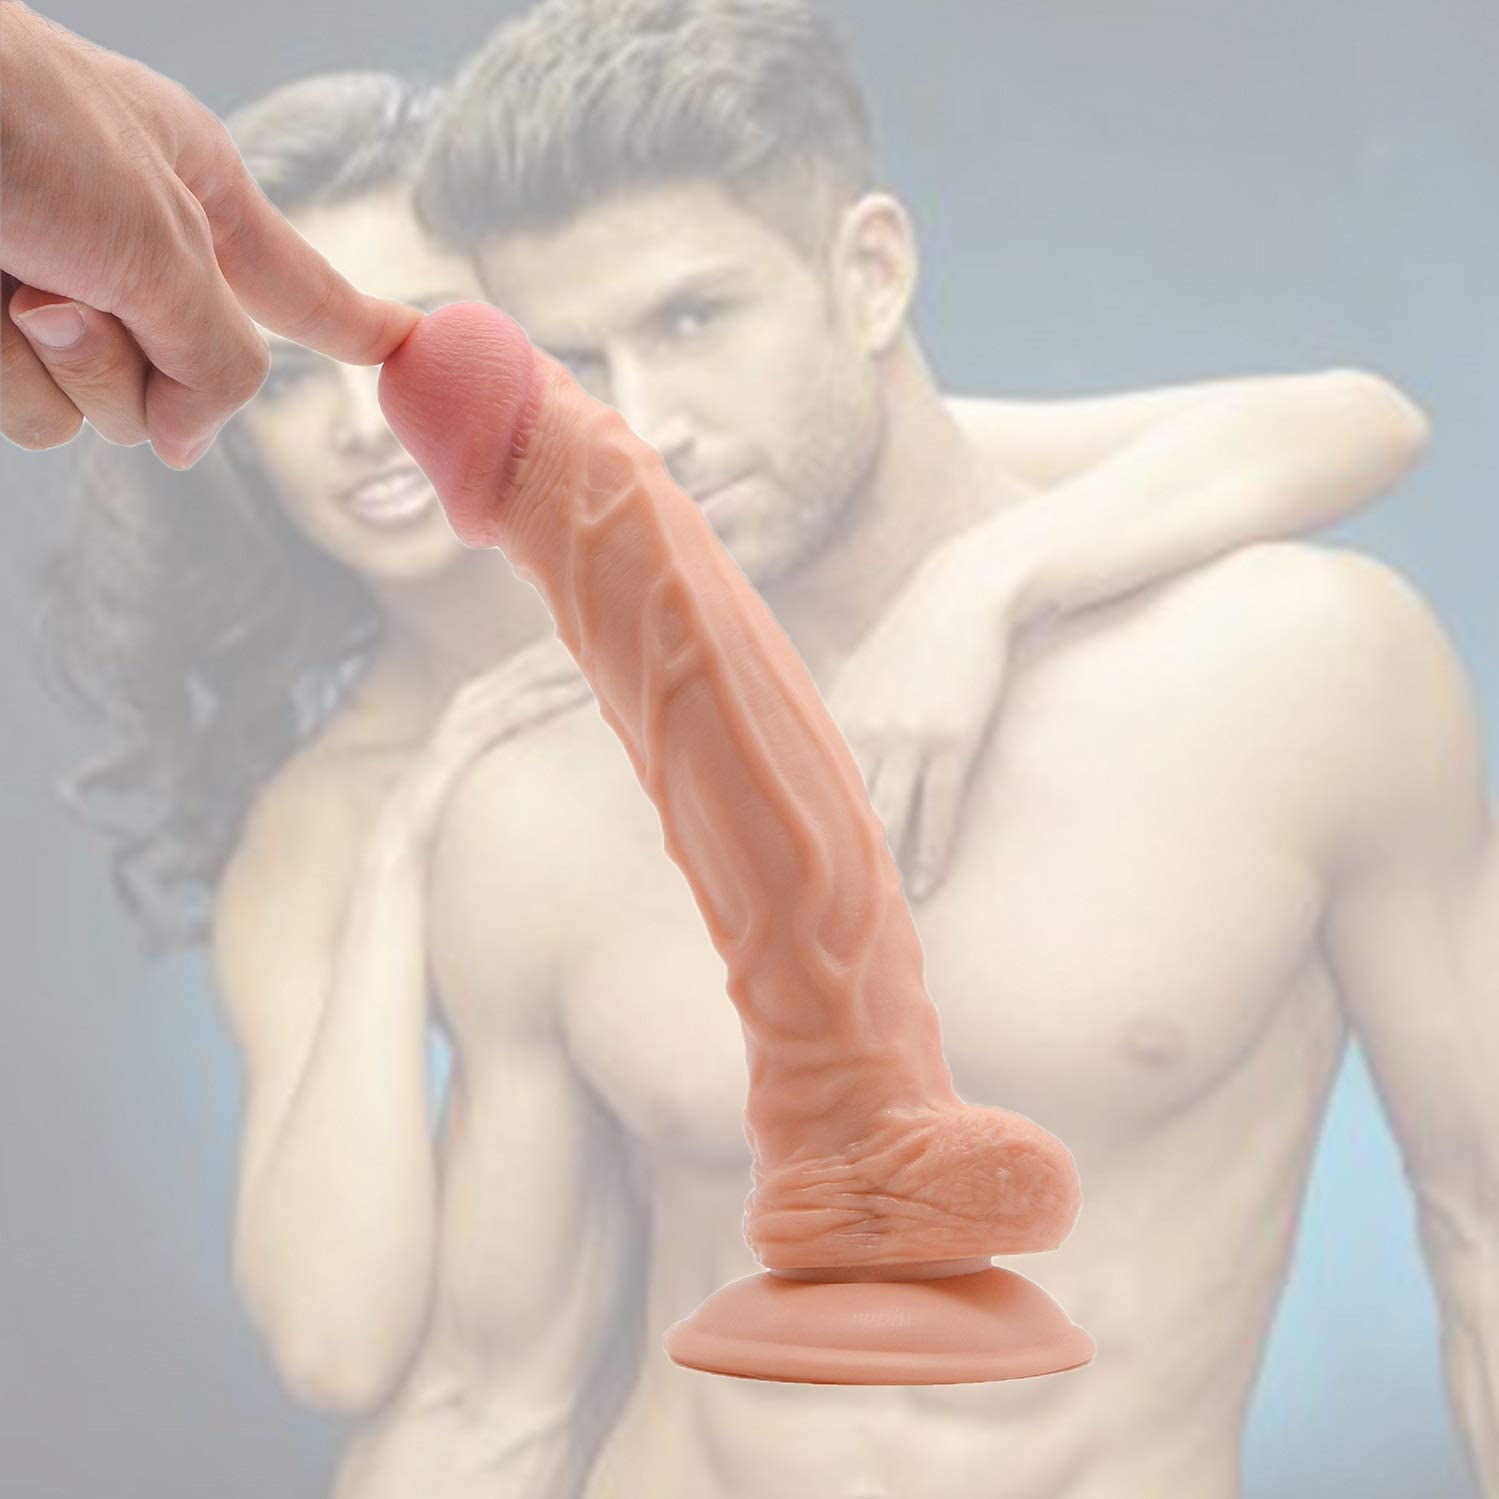 FEHFJAD-2LKM 9.5 Inches lifelike Lifelike Huge Tools for Women Silicone Tools with Suction Cup